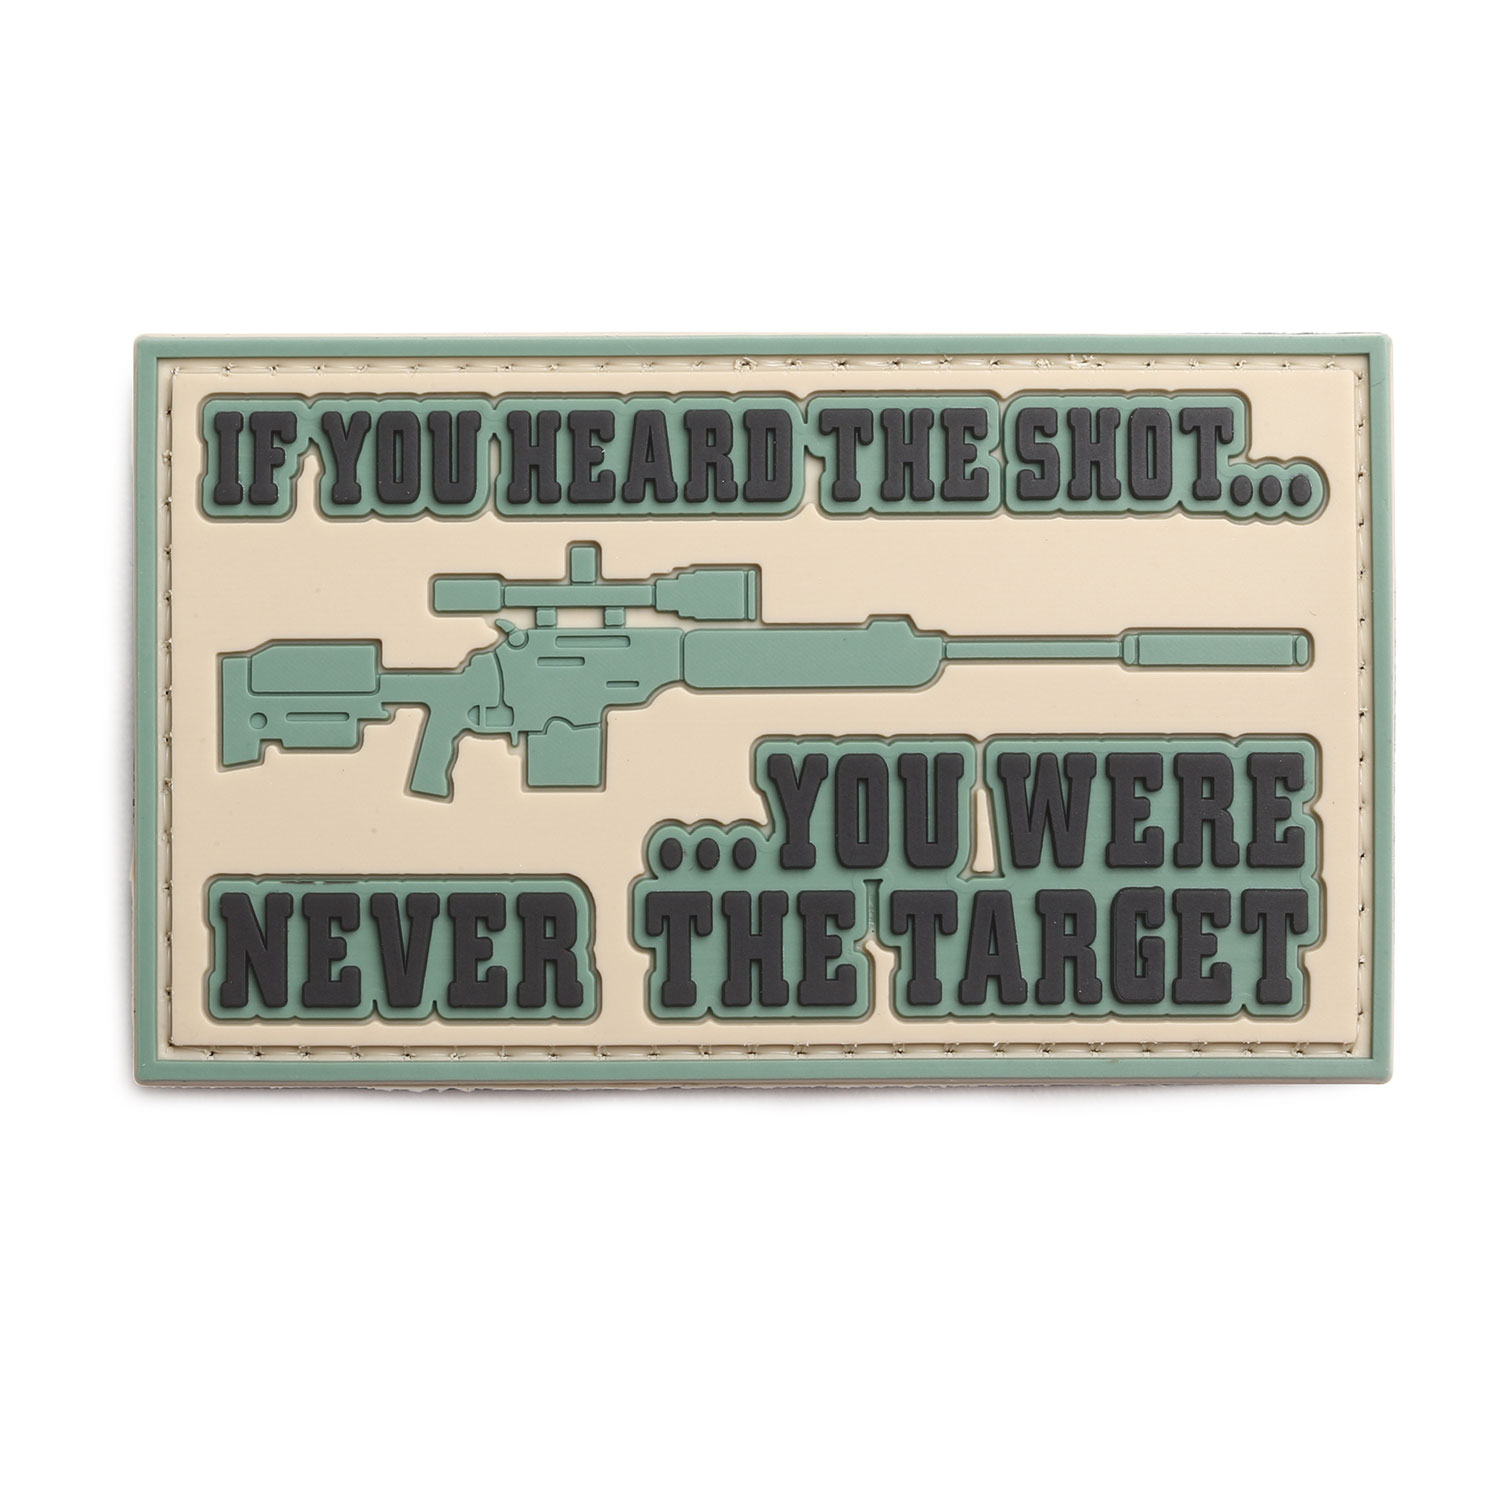 "5ive Star Gear ""Heard The Shot"" Morale Patch"